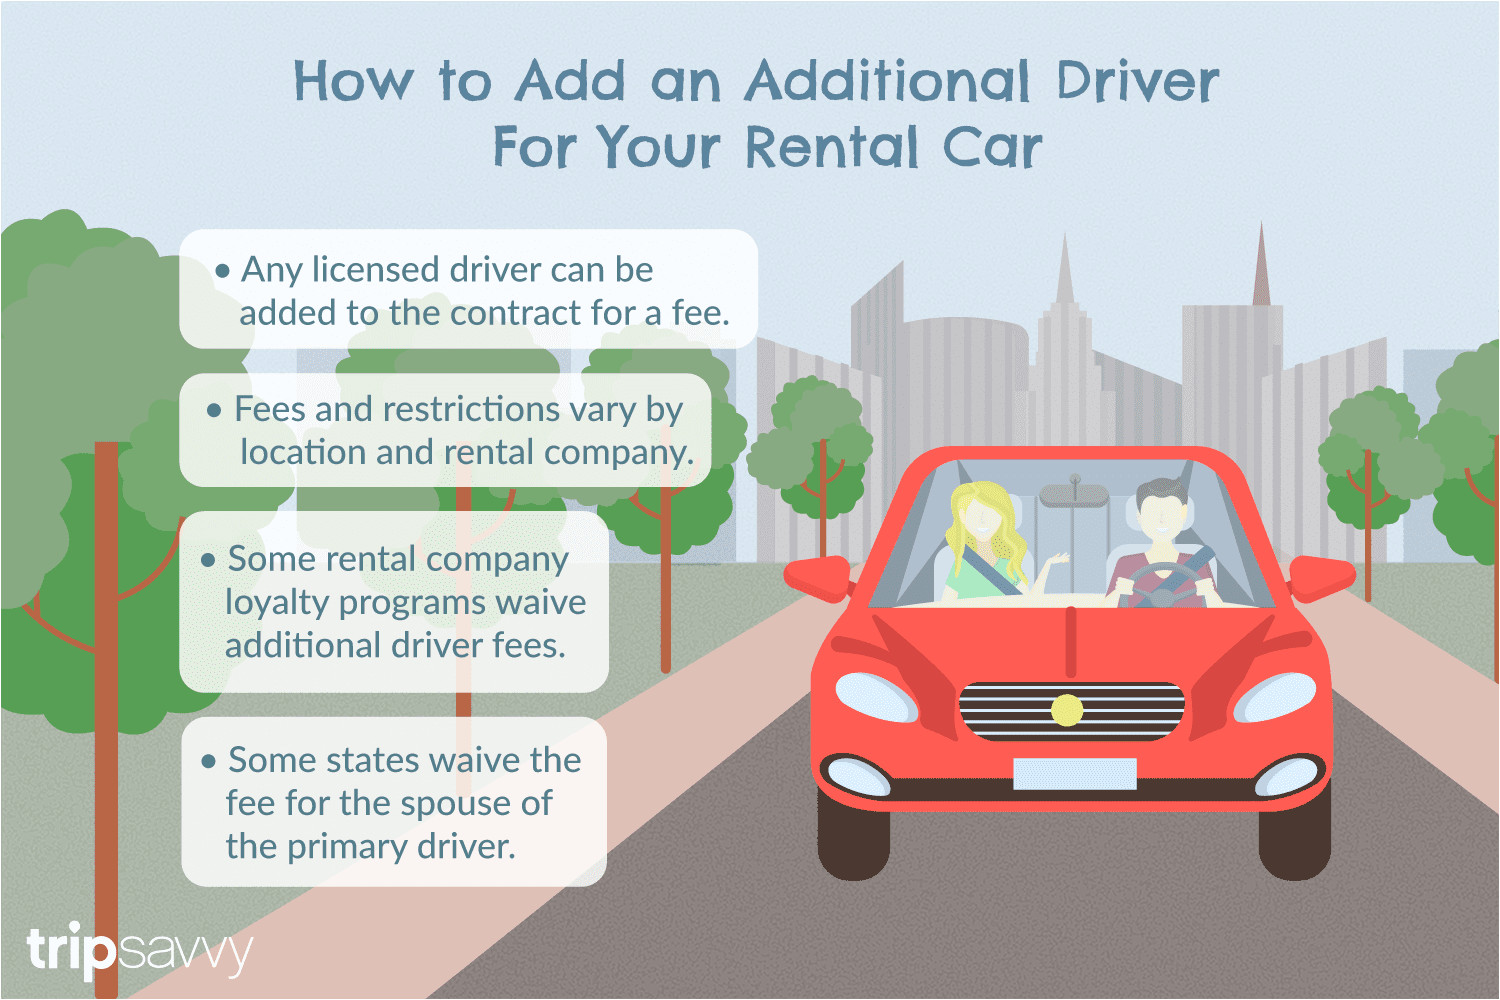 add another driver to rental car contract 2973023 final 5bf5aaa7c9e77c00519140fb png